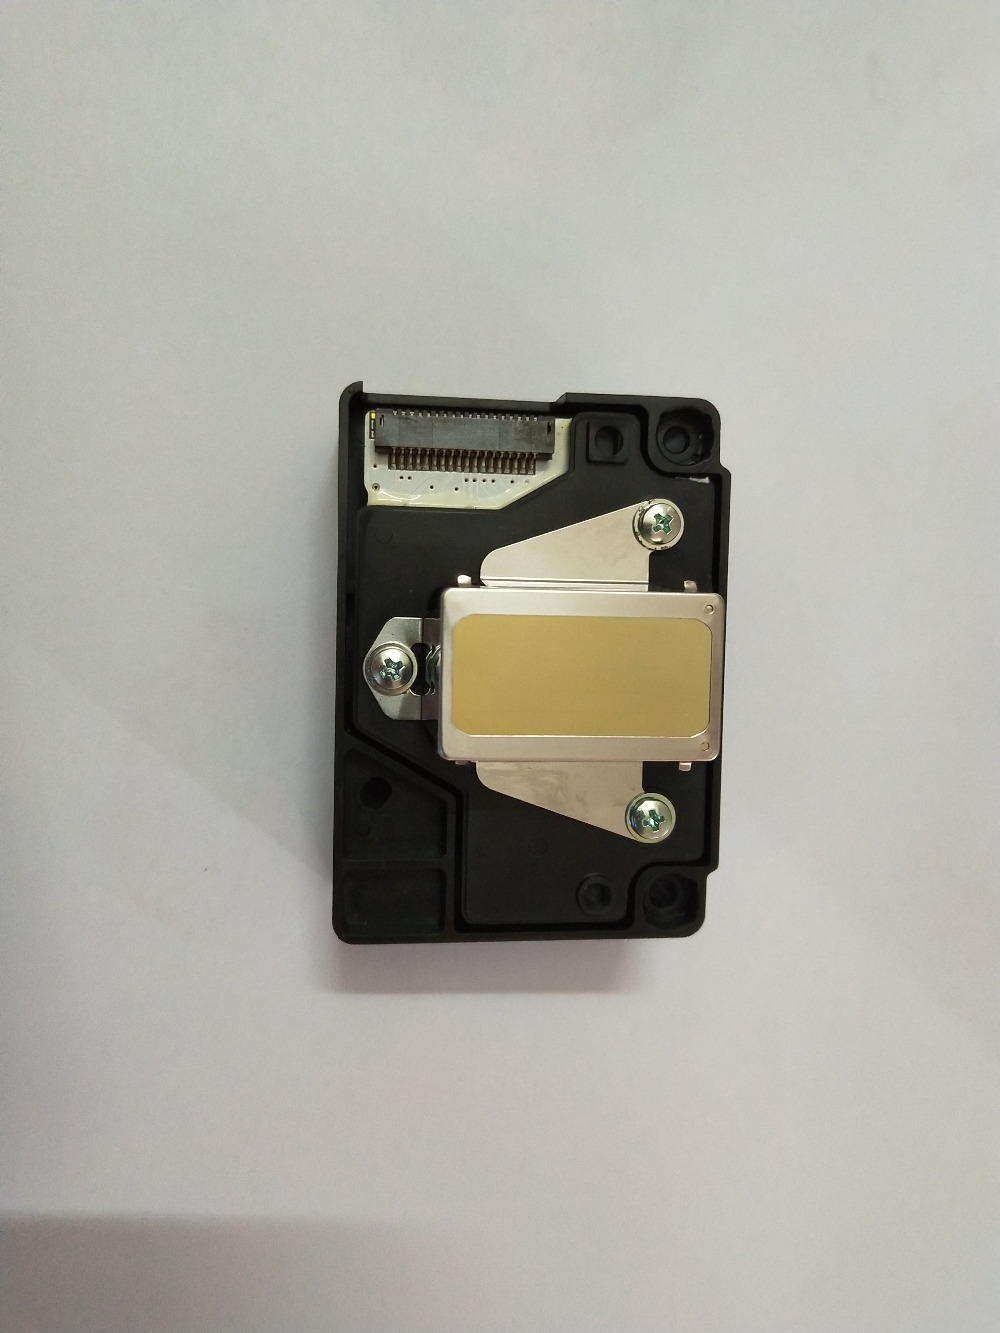 <font><b>epson</b></font> printhead F185000 Print Head for <font><b>Epson</b></font> ME1100 ME70 ME650 <font><b>C110</b></font> C120 C10 C1100 T1100 T110 T30 T33 C10 L1300 printer part image